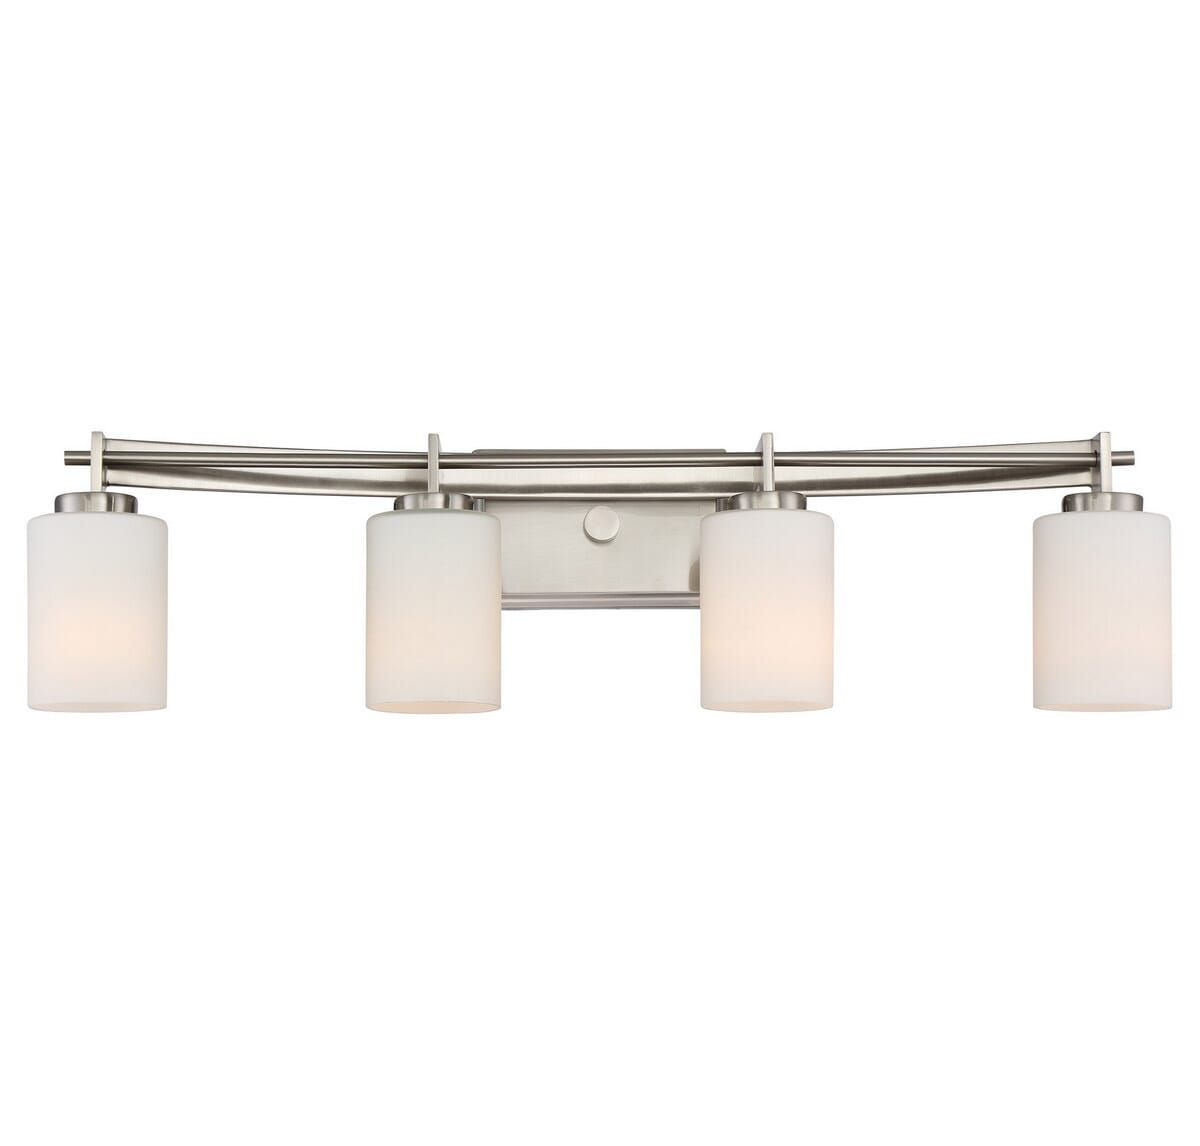 """Photo of Quoizel Taylor 4-Light 8 """"washstand lamp made of brushed nickel"""